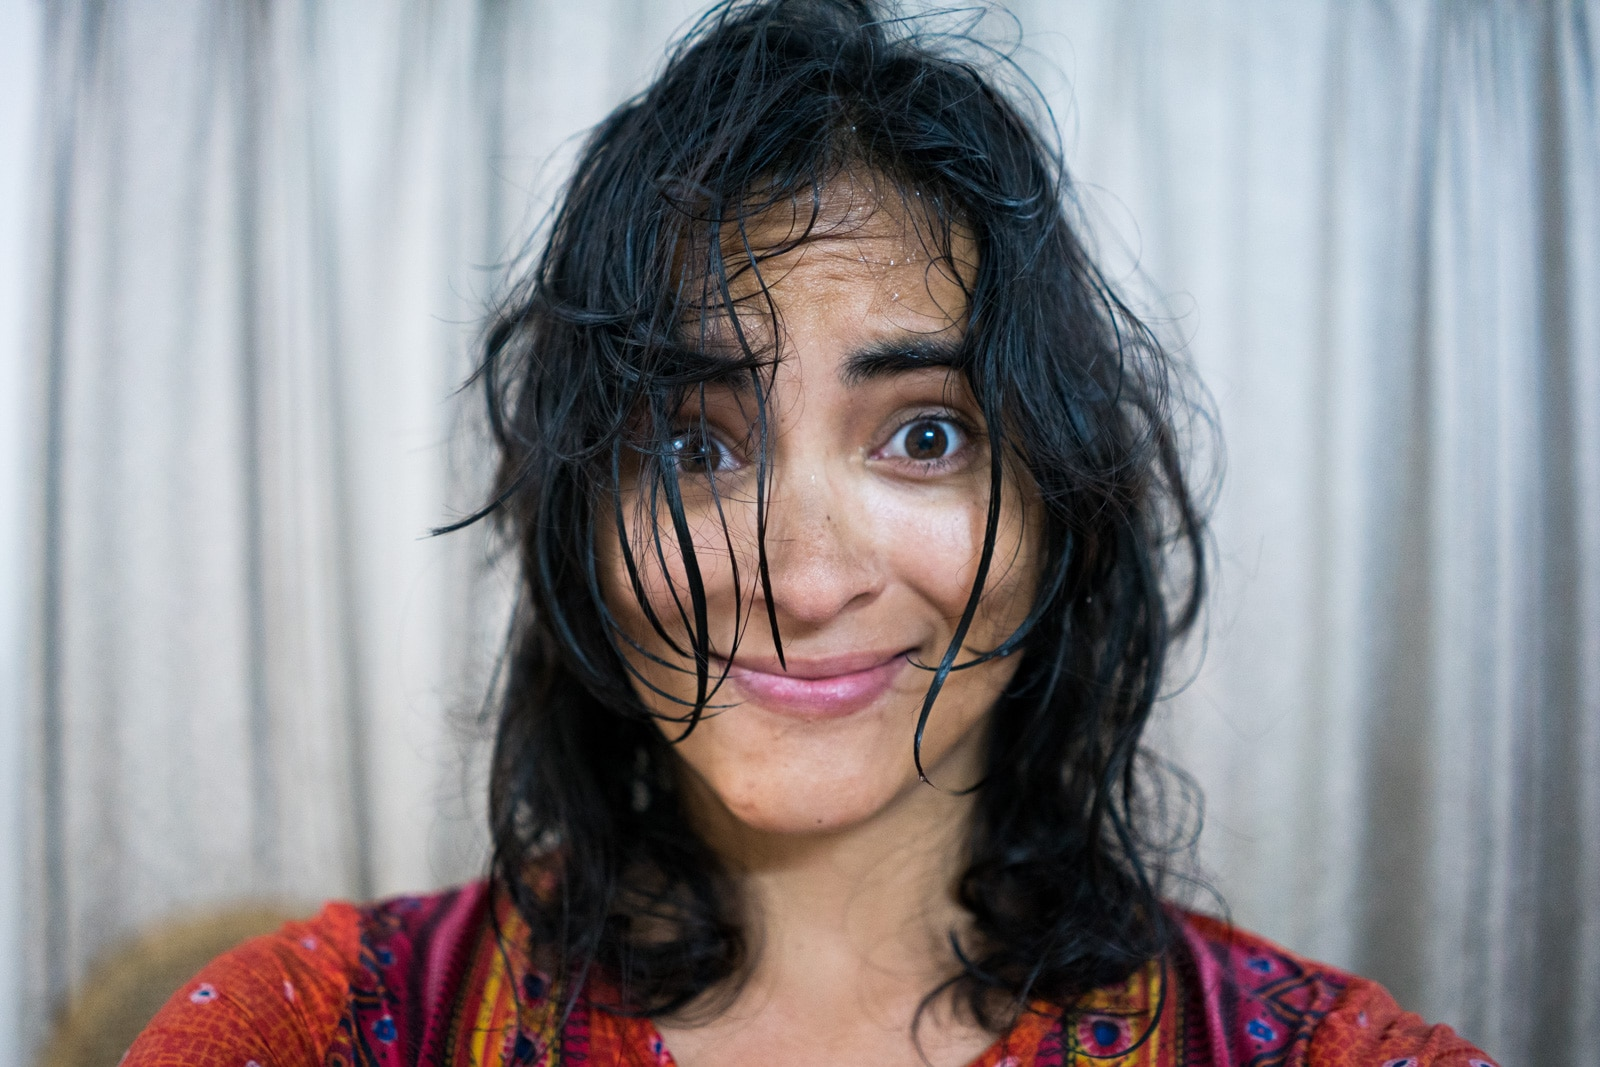 Monsoon travel packing list - Alex after getting soaked by rain - Lost With Purpose